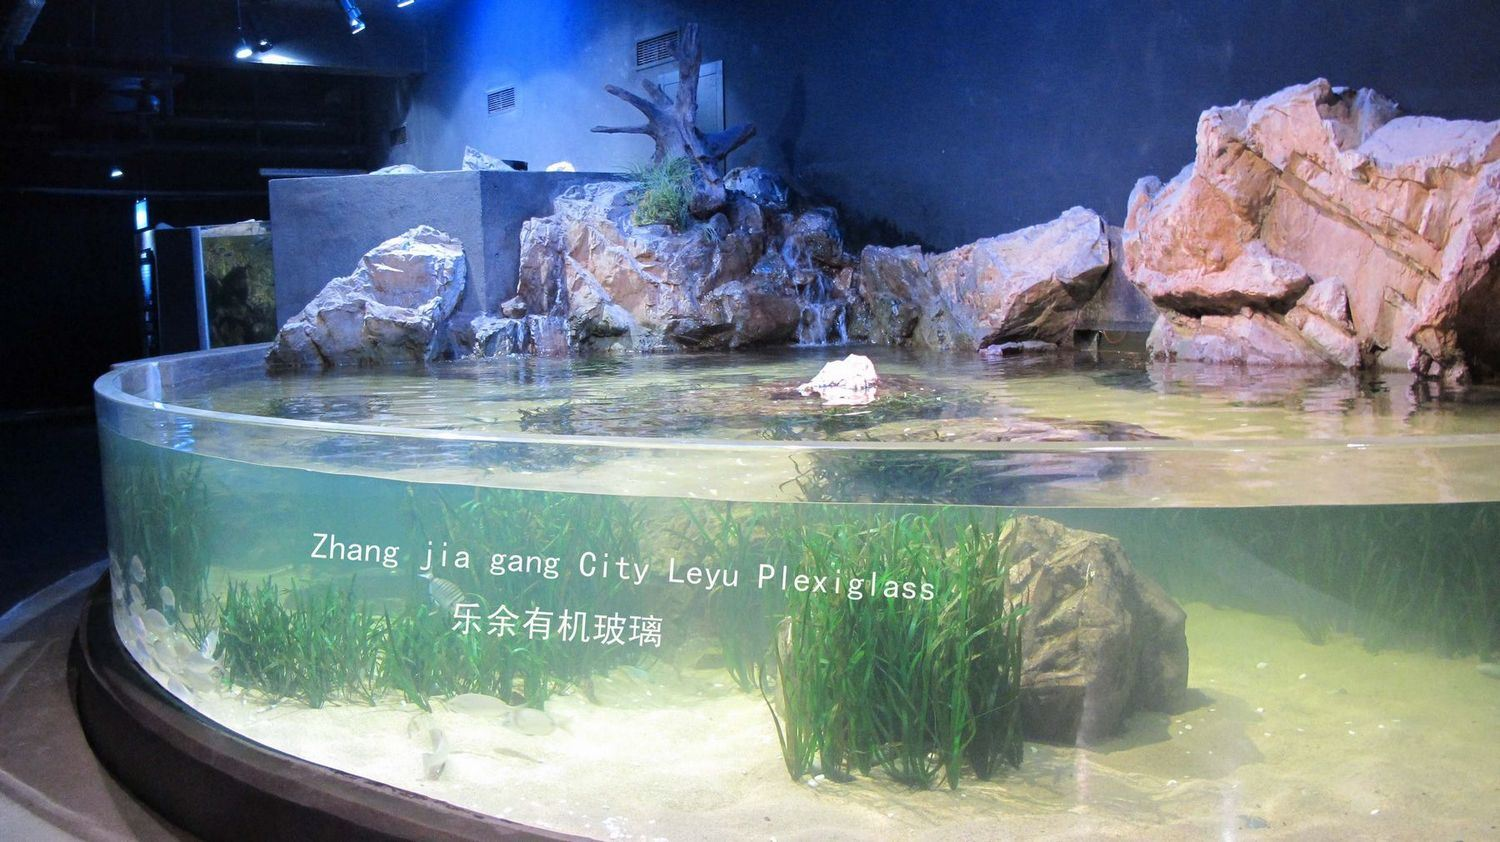 ... Fish Tank for Tourists - China Custom Acrylic Fish Tank, Acrylic Fish